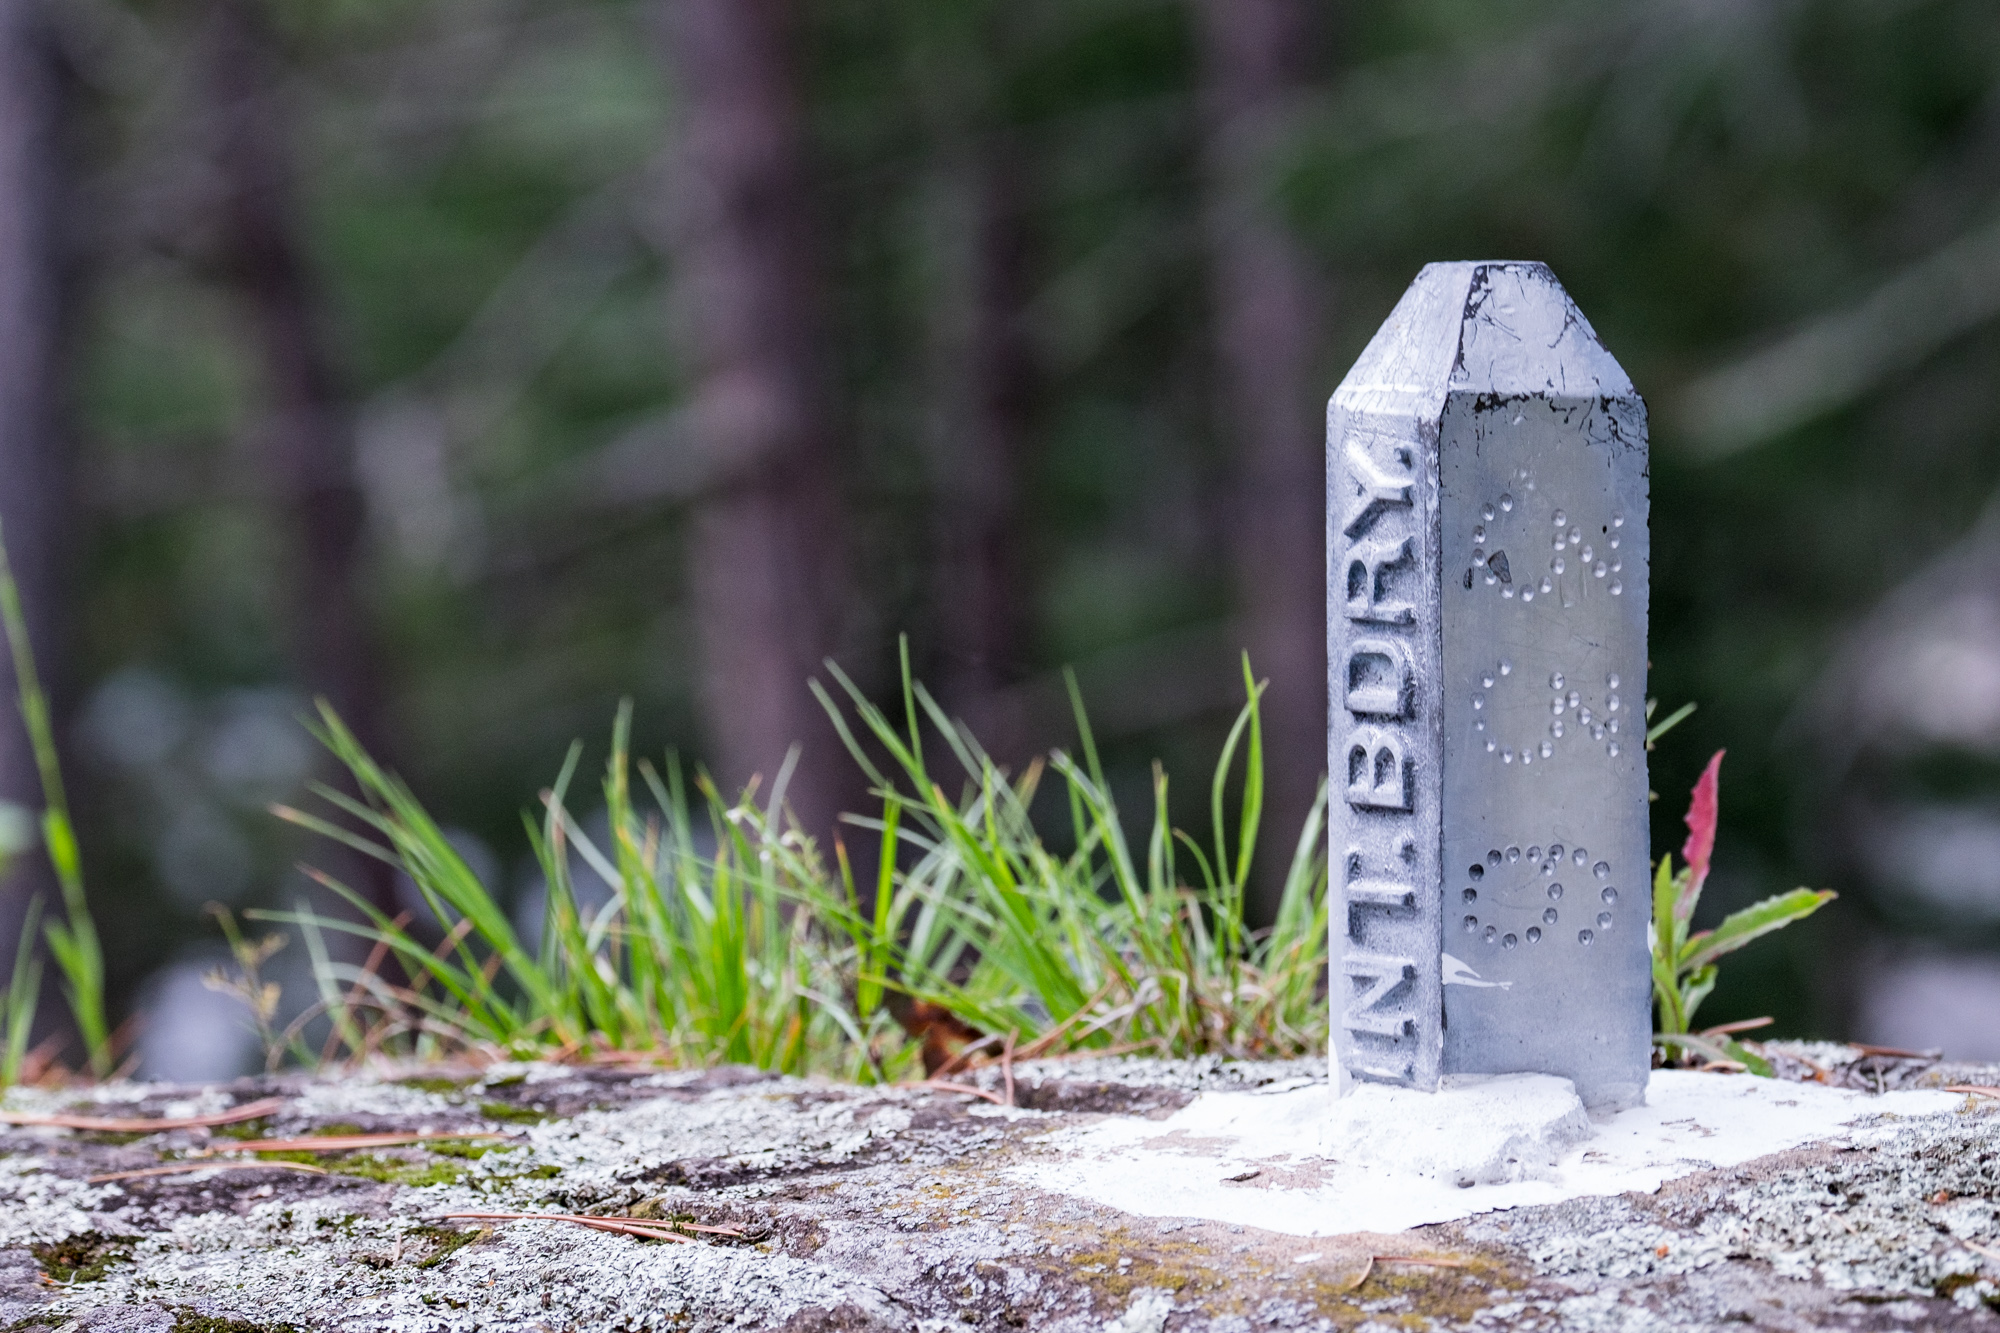 While hiking in the woods we noticed an international boundary marker. It is safe to say we straddled two countries at least a few times on this exploration.